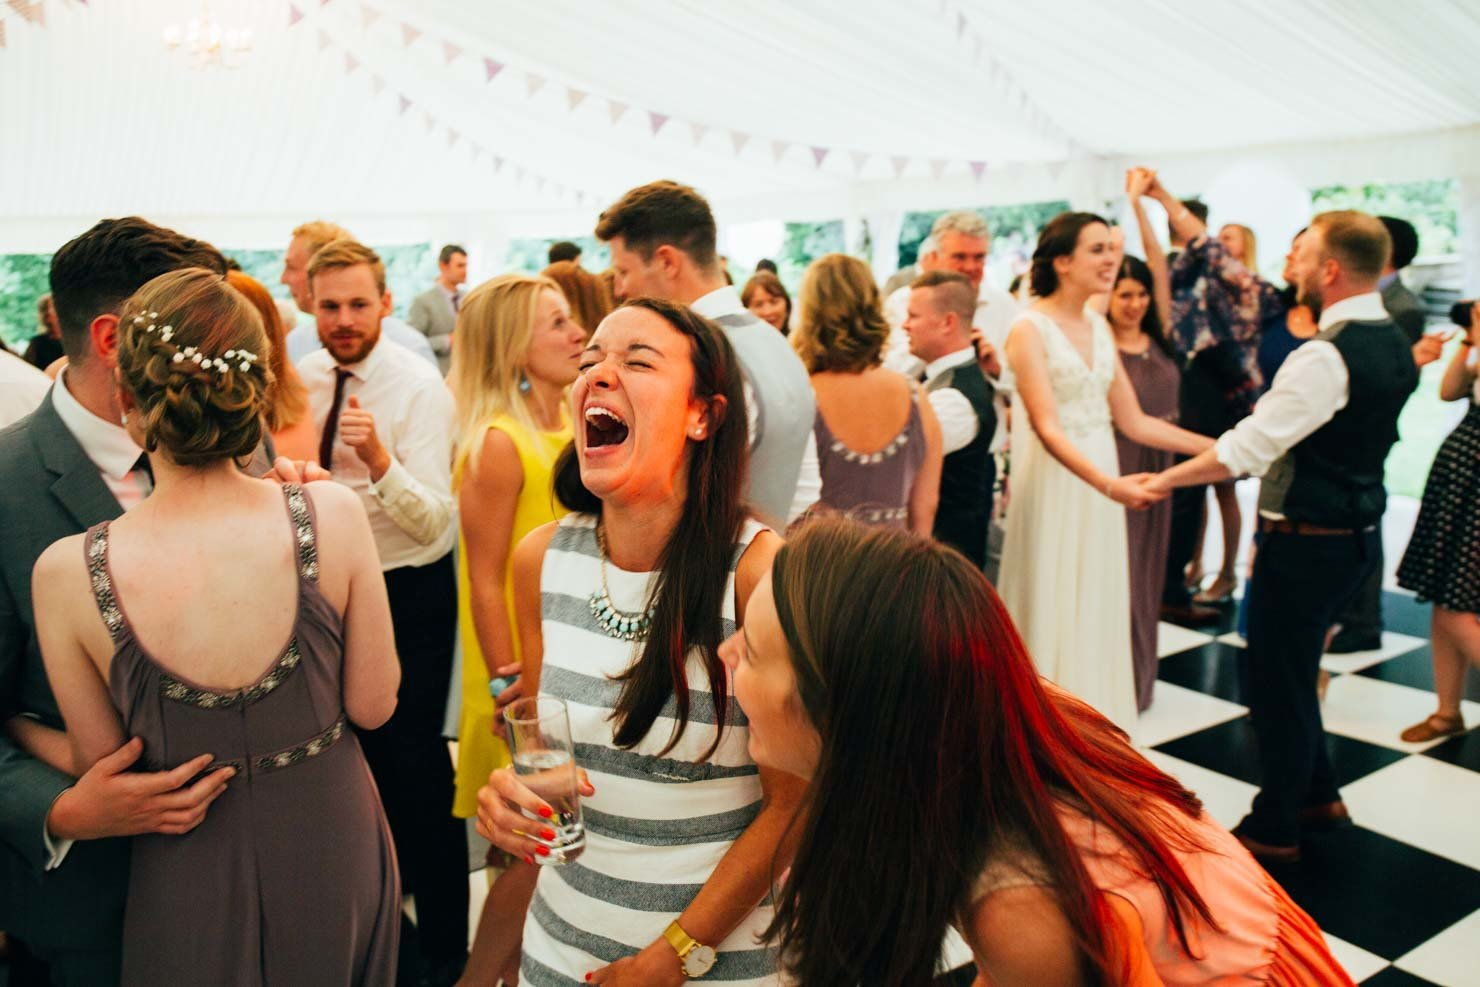 Laughing natural wedding guest photograph on the dance floor inside a marquee